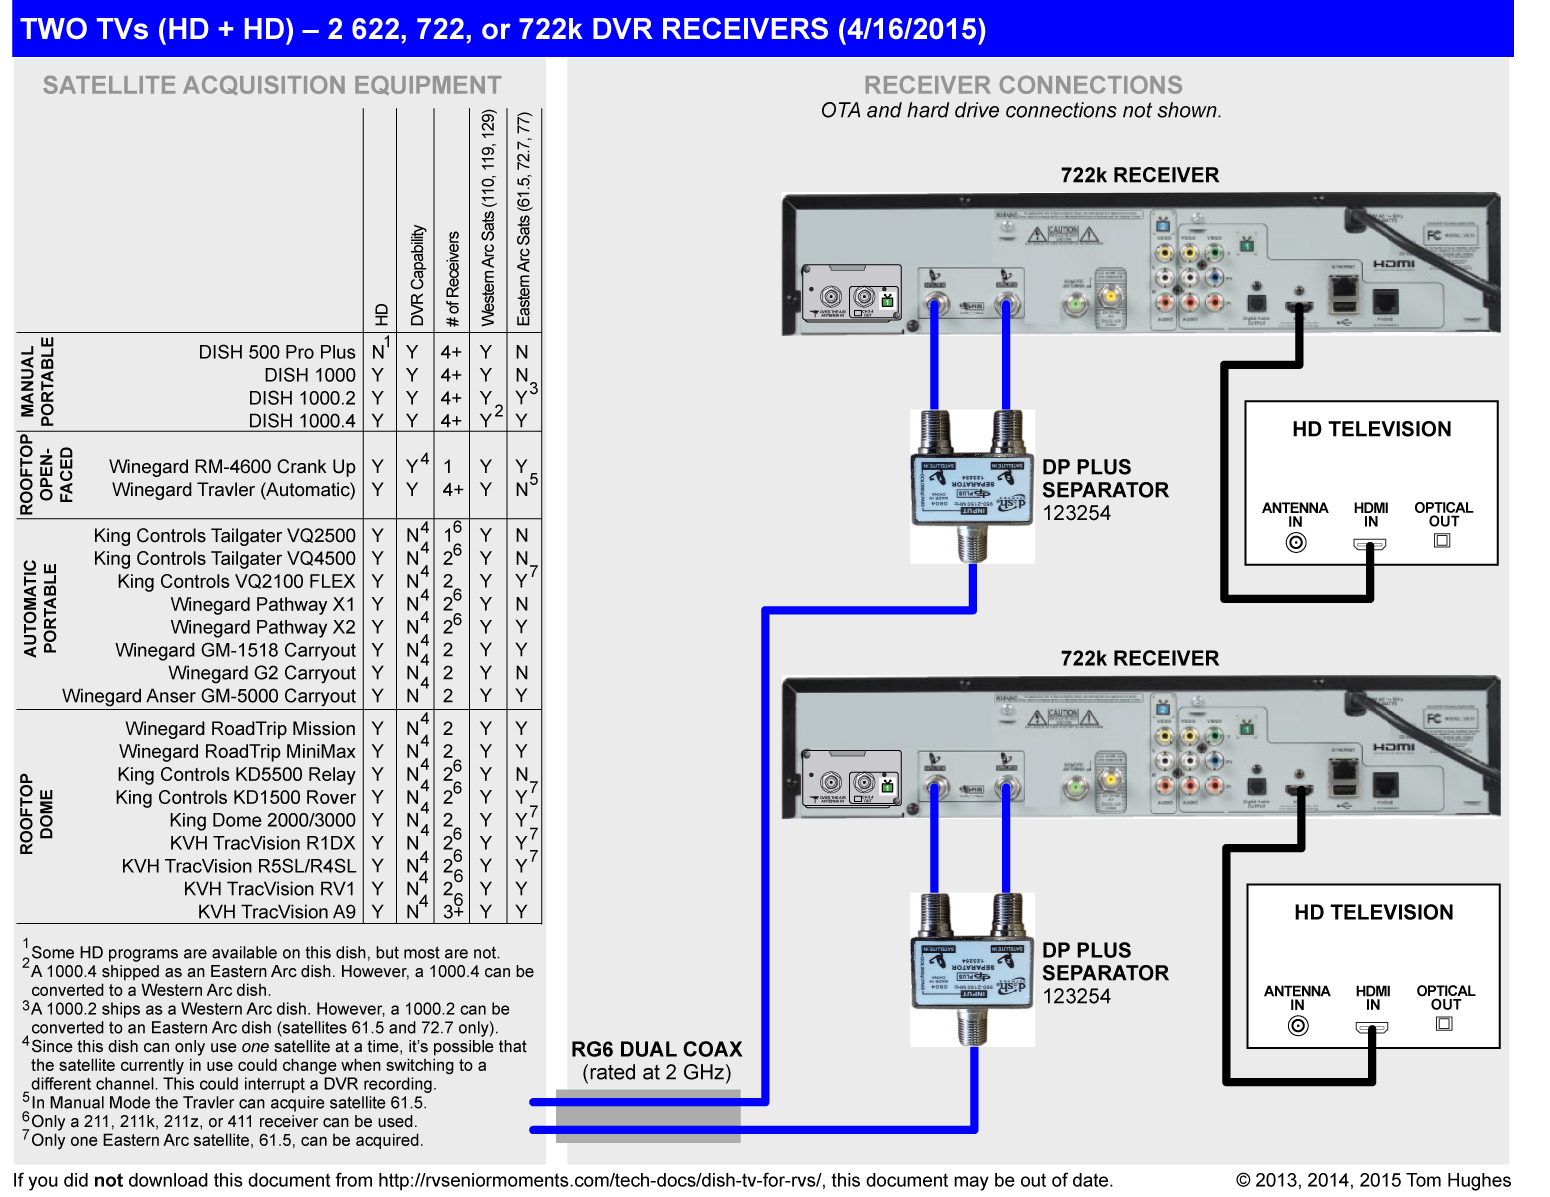 206_dish_twotvs_622_722_722k_hdhd720dpi wiring diagram dish network 722k readingrat net dish network wiring diagrams dual tuner at gsmx.co